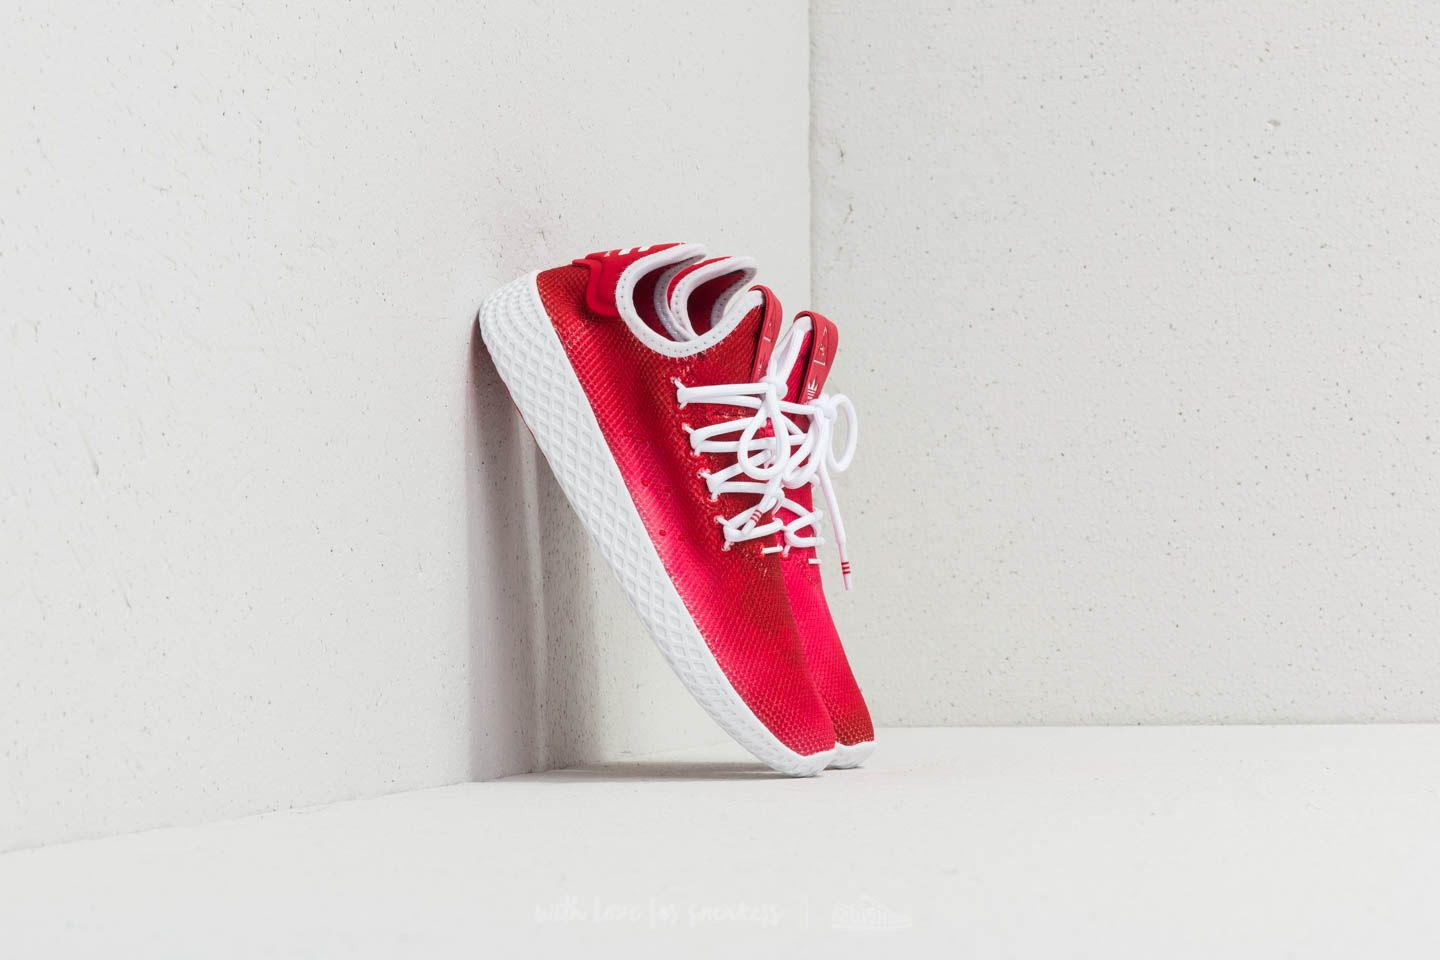 3a06433b15527 adidas x Pharrell Williams Tennis HU J Scarlet  Ftw White  Ftw White ...